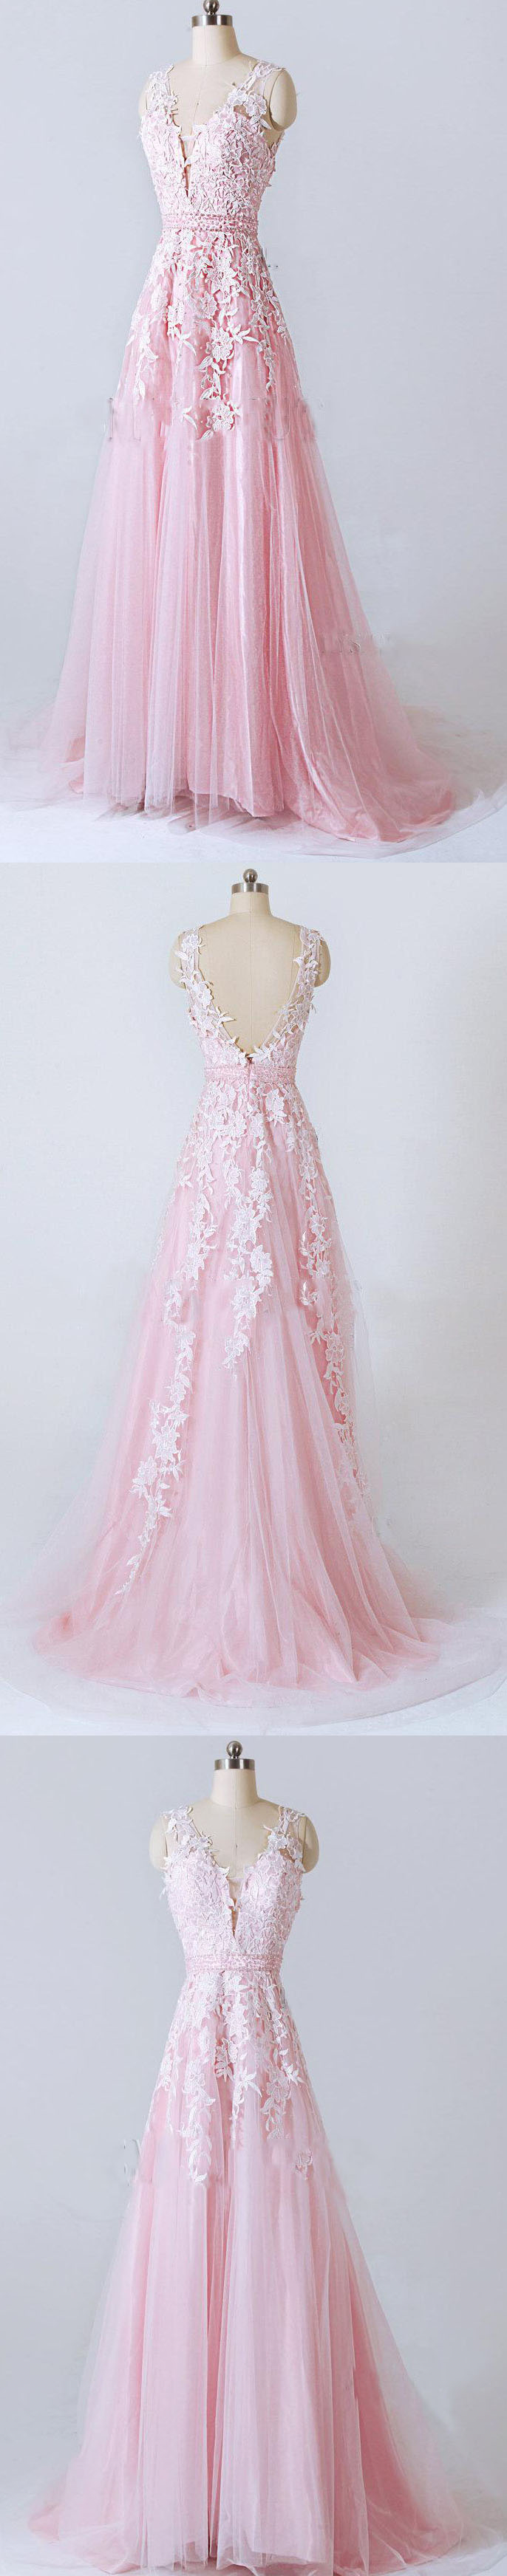 Lace dress pink  Pin by June Bridals on Prom Dresses  Pinterest  Lace dress Prom